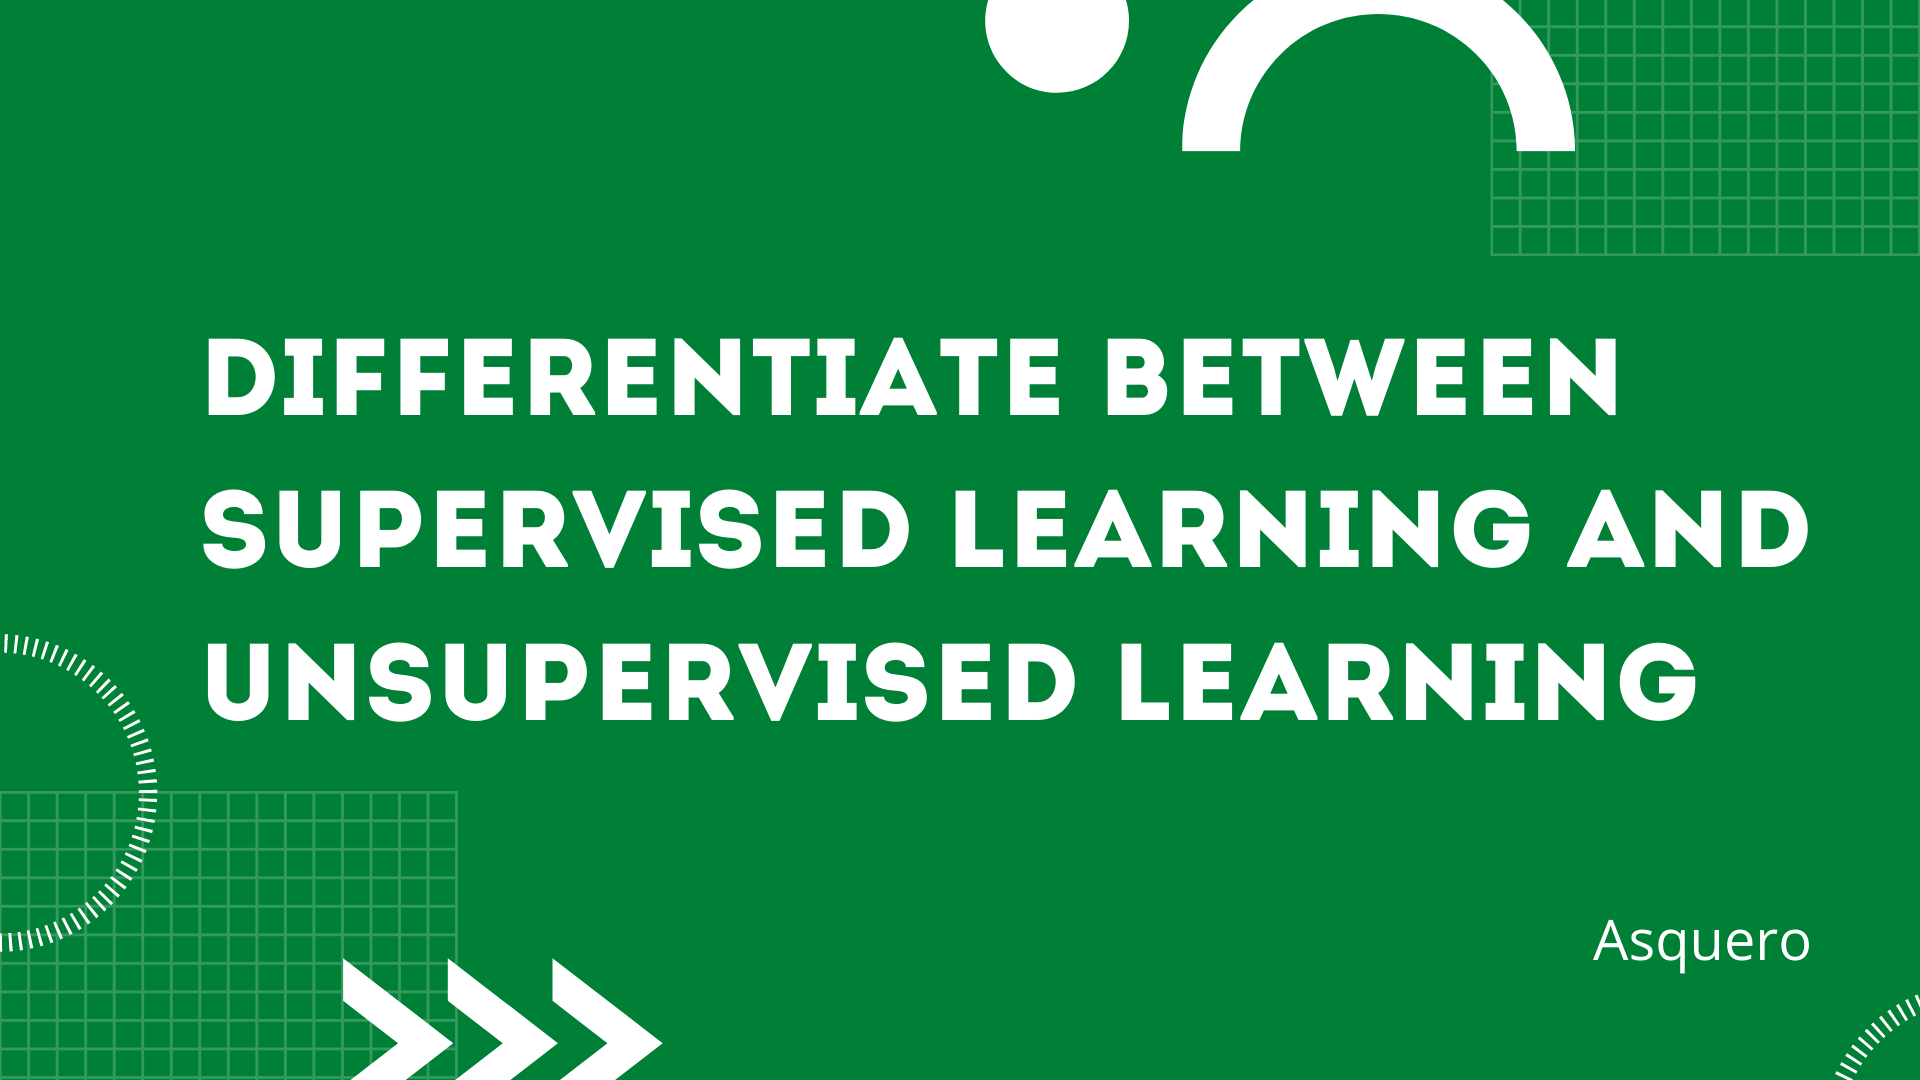 Differentiate between Supervised Learning and Unsupervised Learning